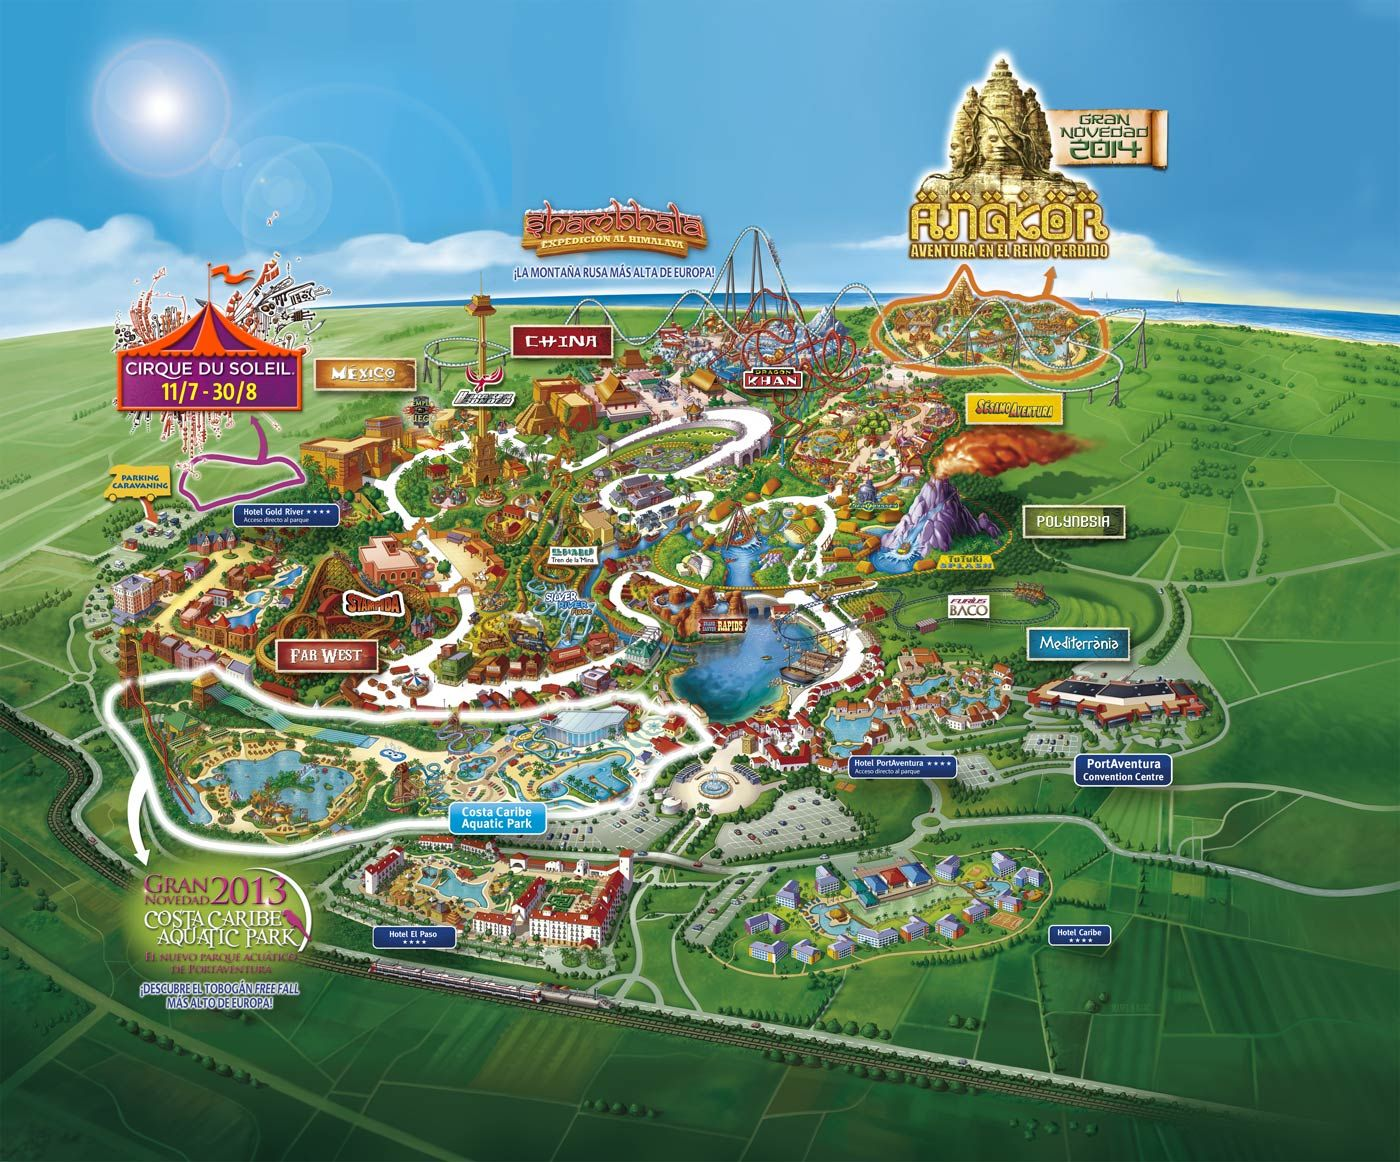 port aventura 2014 map salou catalonia amusement parks pinterest amusement parks and park. Black Bedroom Furniture Sets. Home Design Ideas